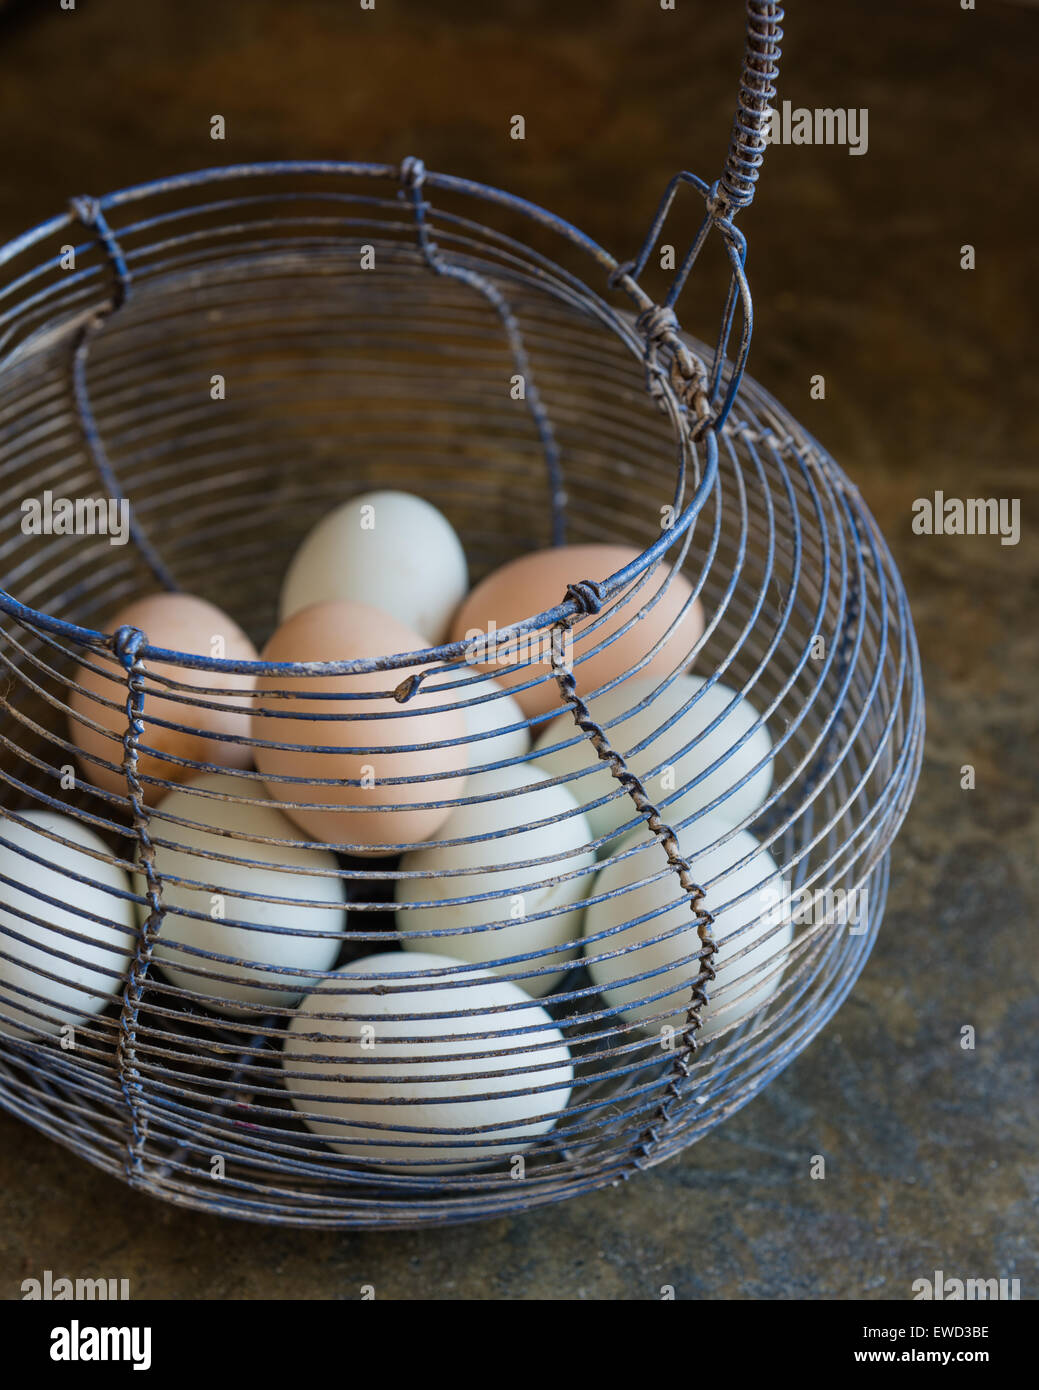 Eggs in a vintage wire basket - Stock Image